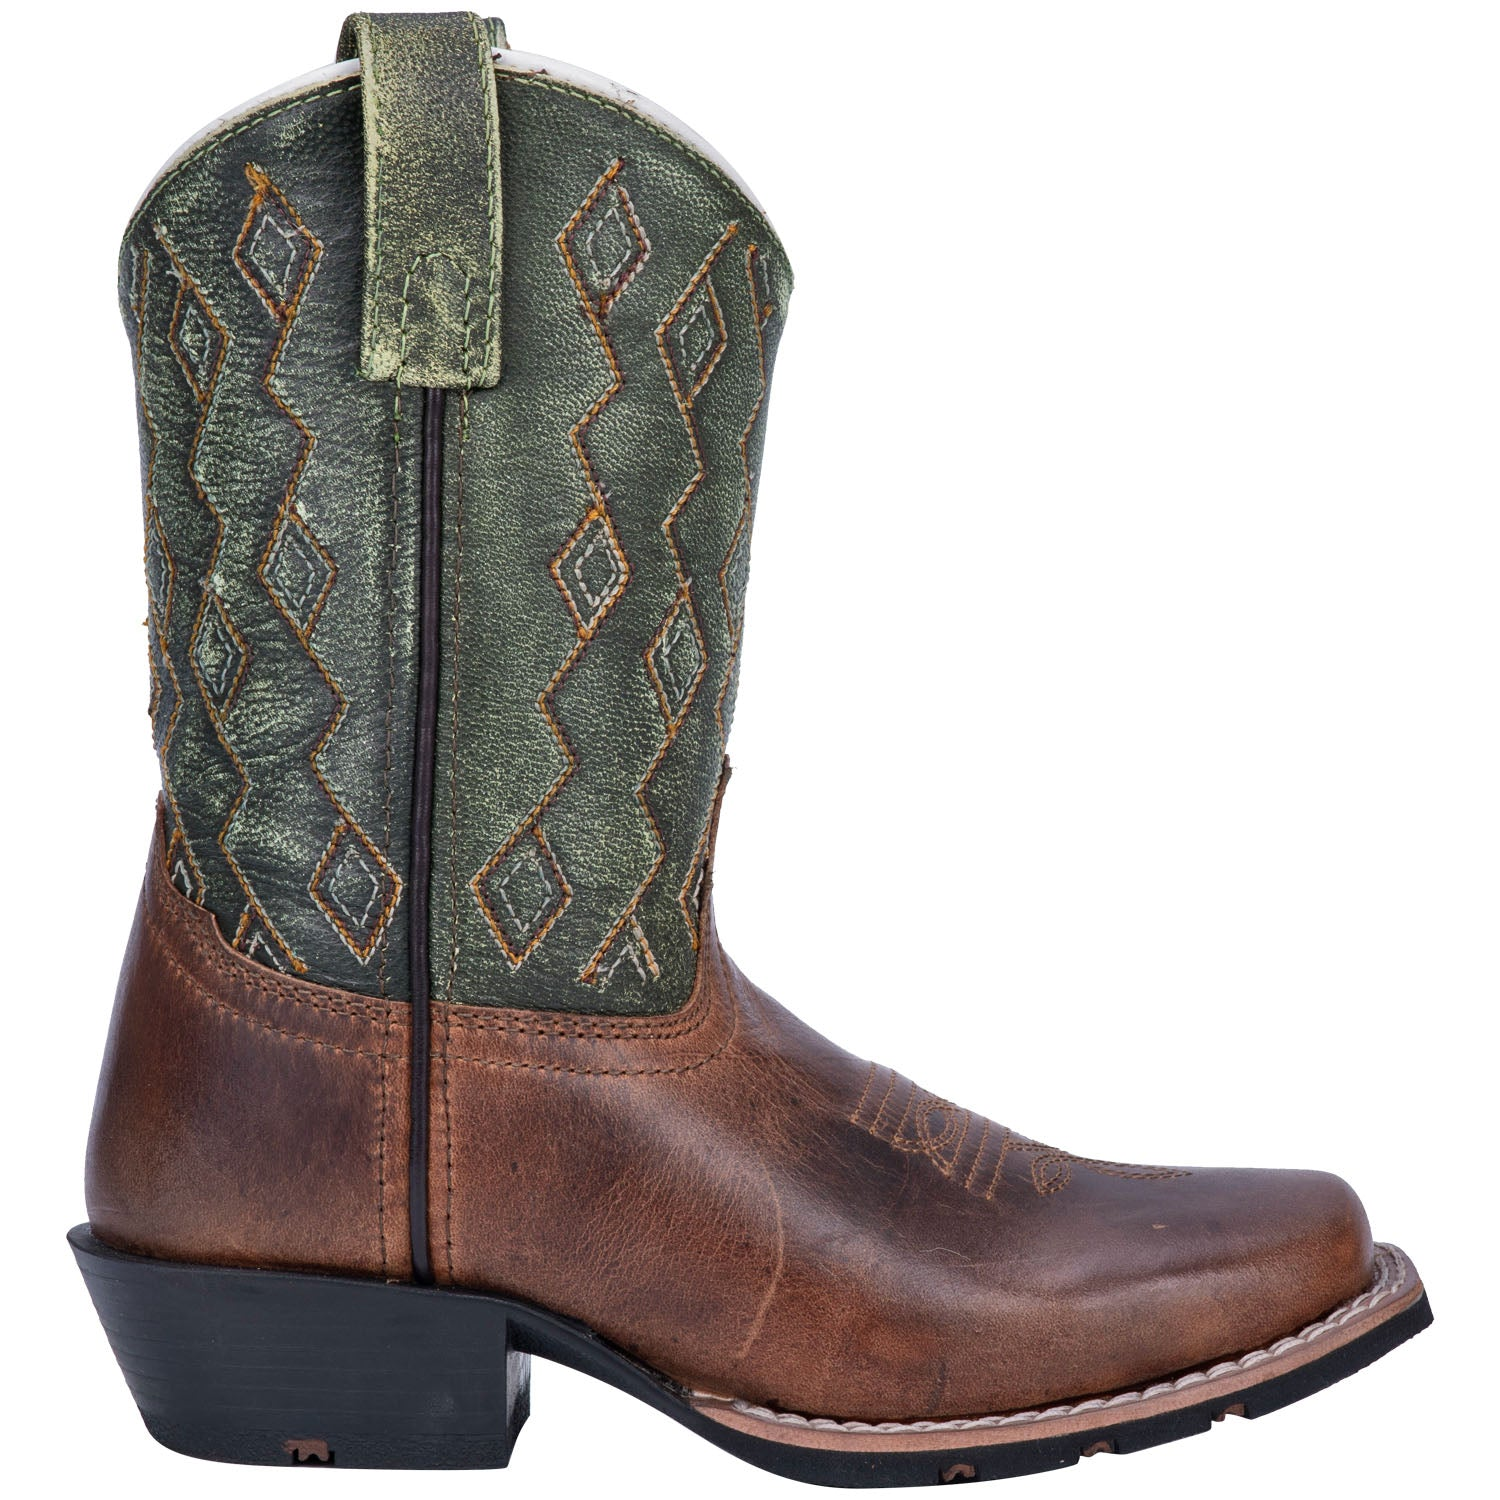 TEDDY LEATHER CHILDREN'S BOOT 4254311120938